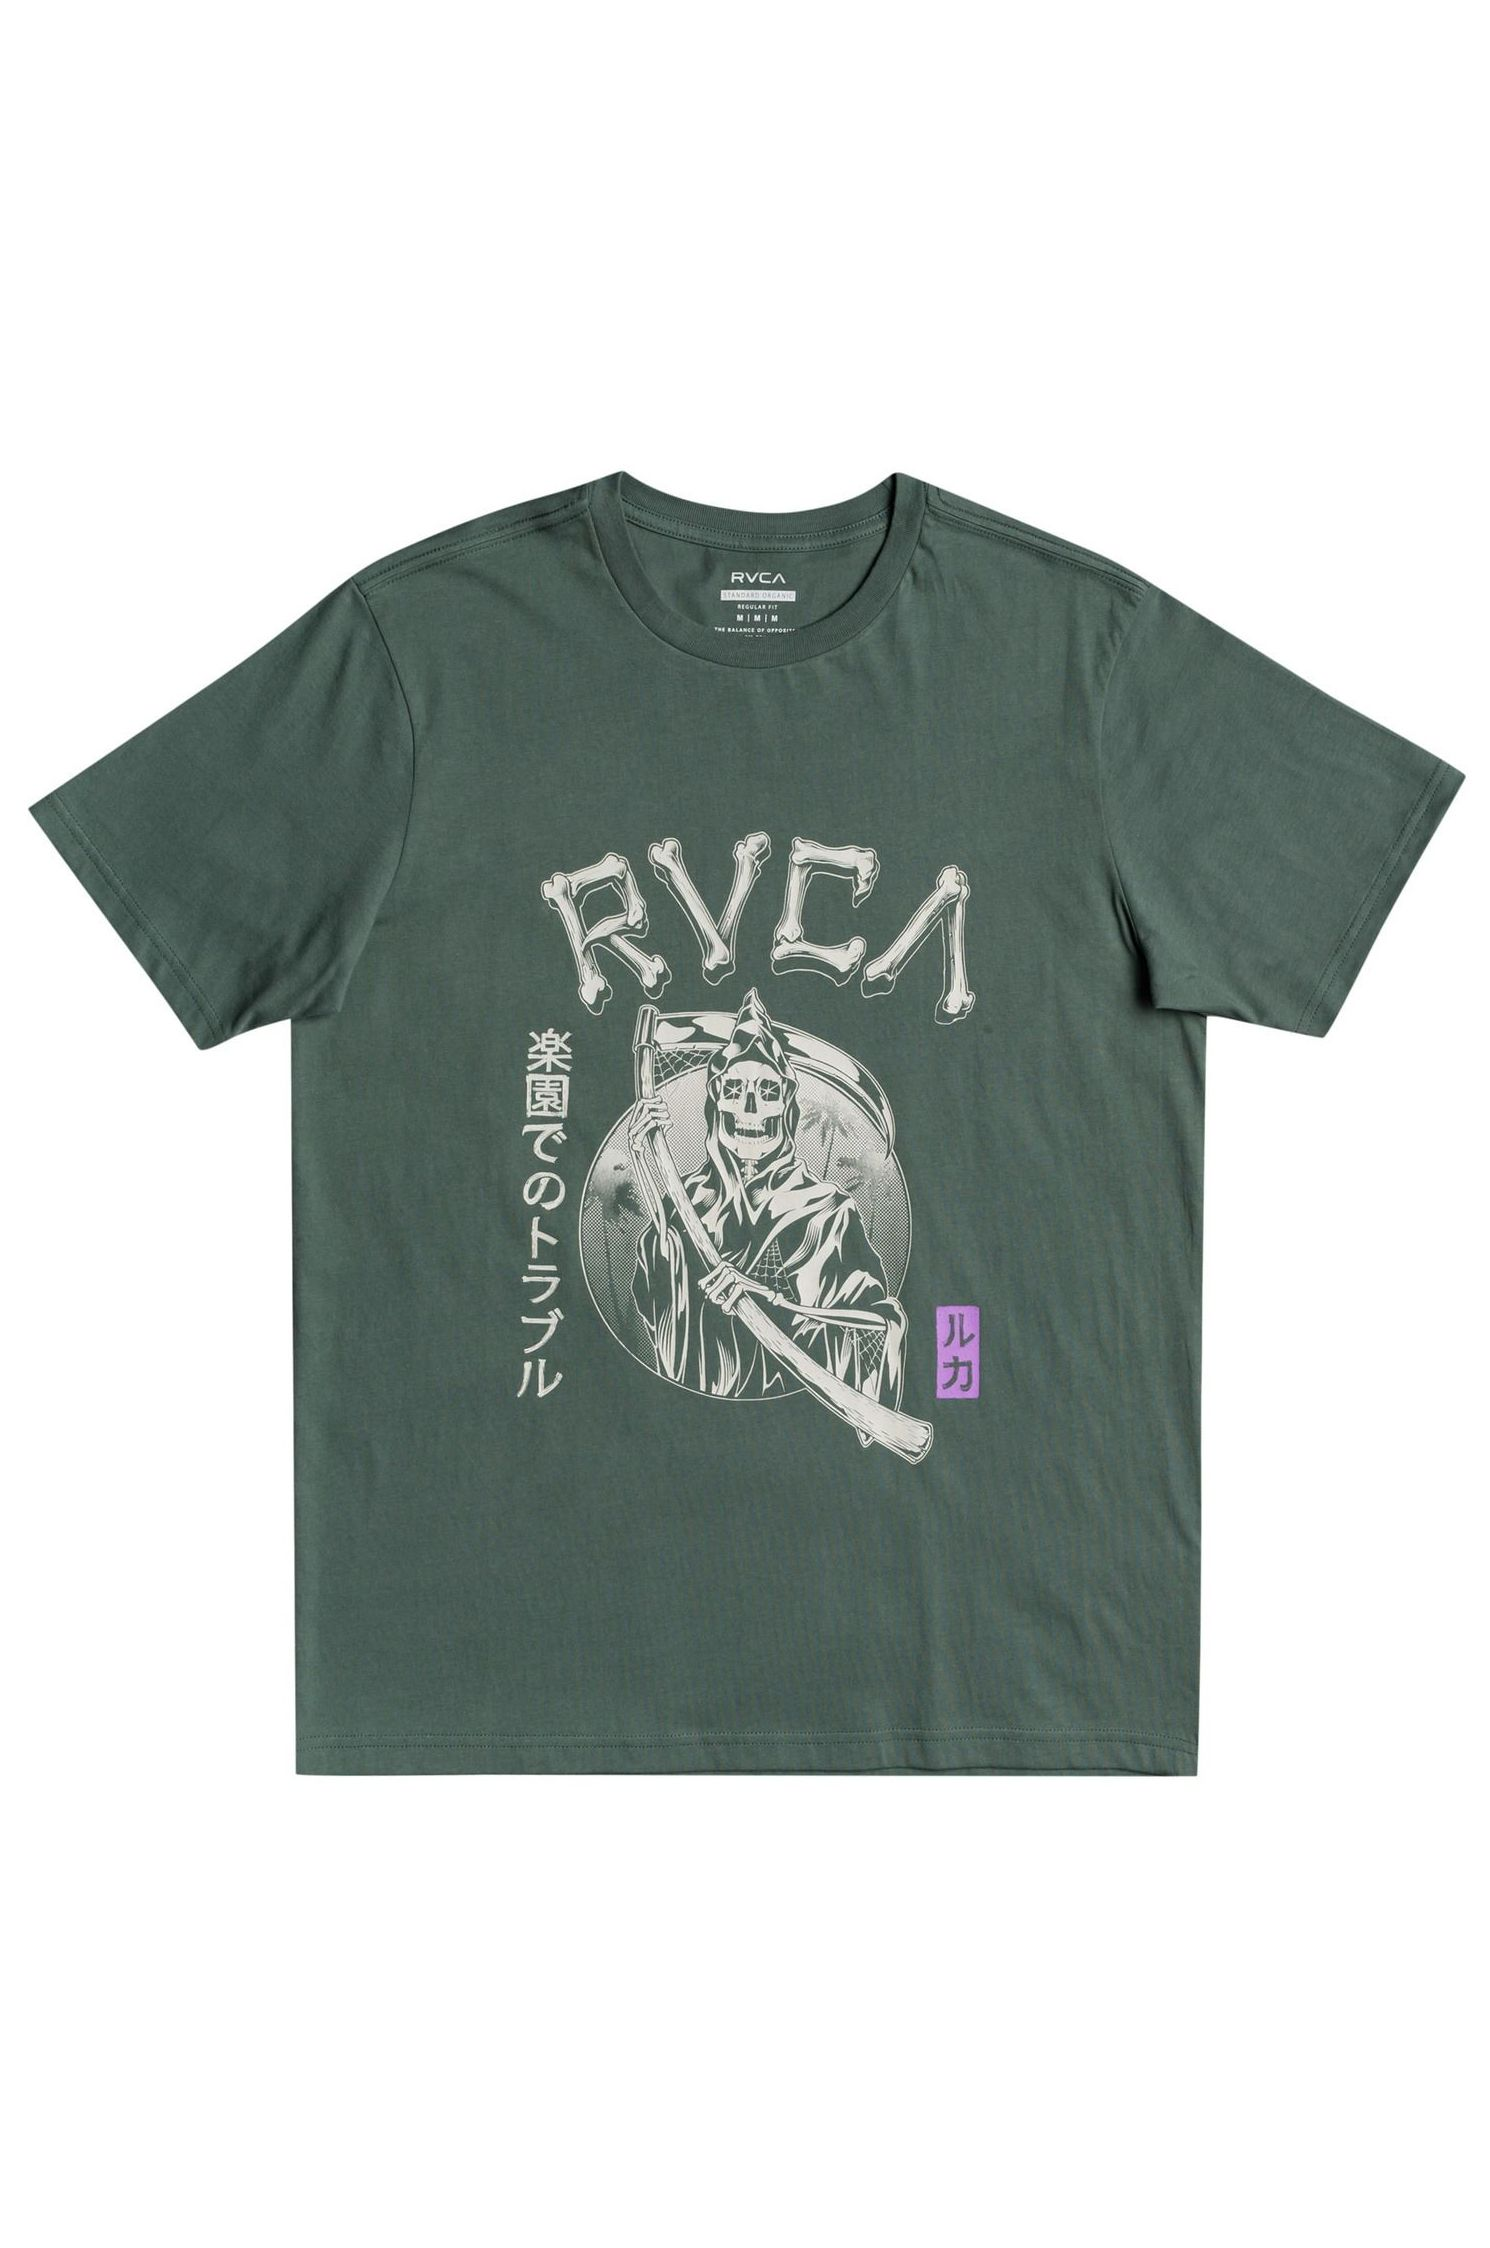 T-Shirt RVCA TROUBLE IN PARADIZE GEORGE THOMPSON Balsam Green